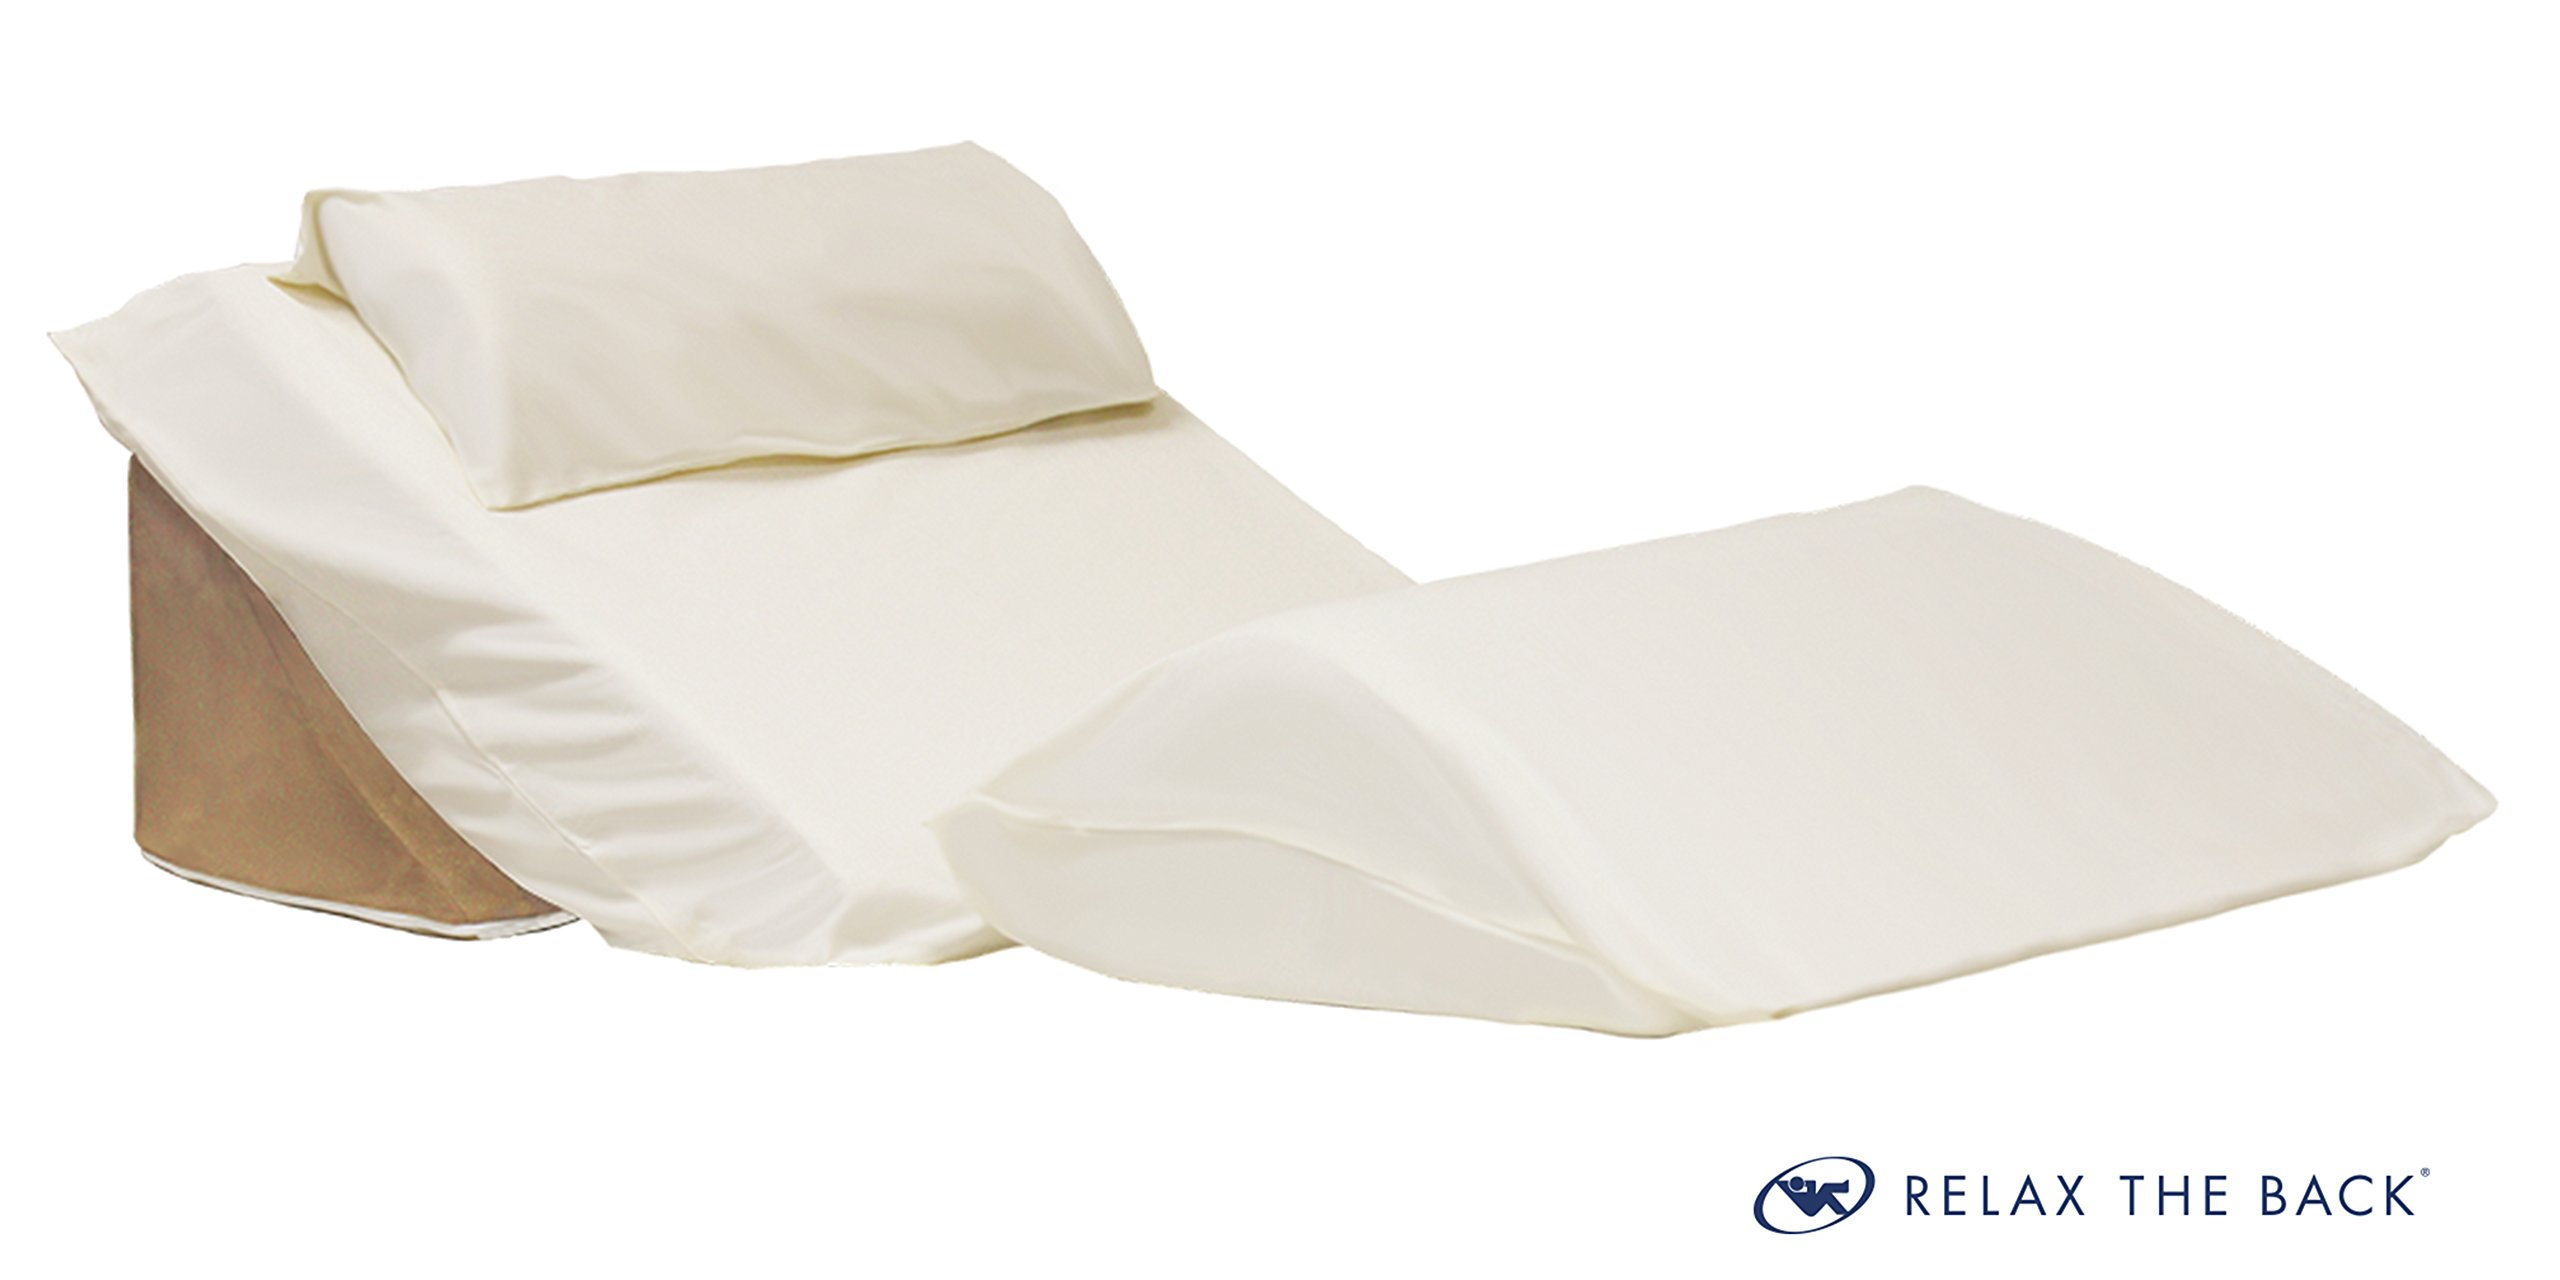 Relax The Back 3 Piece Bed Wedge Case Set (Covers Only Does not Include Wedge Pillows)